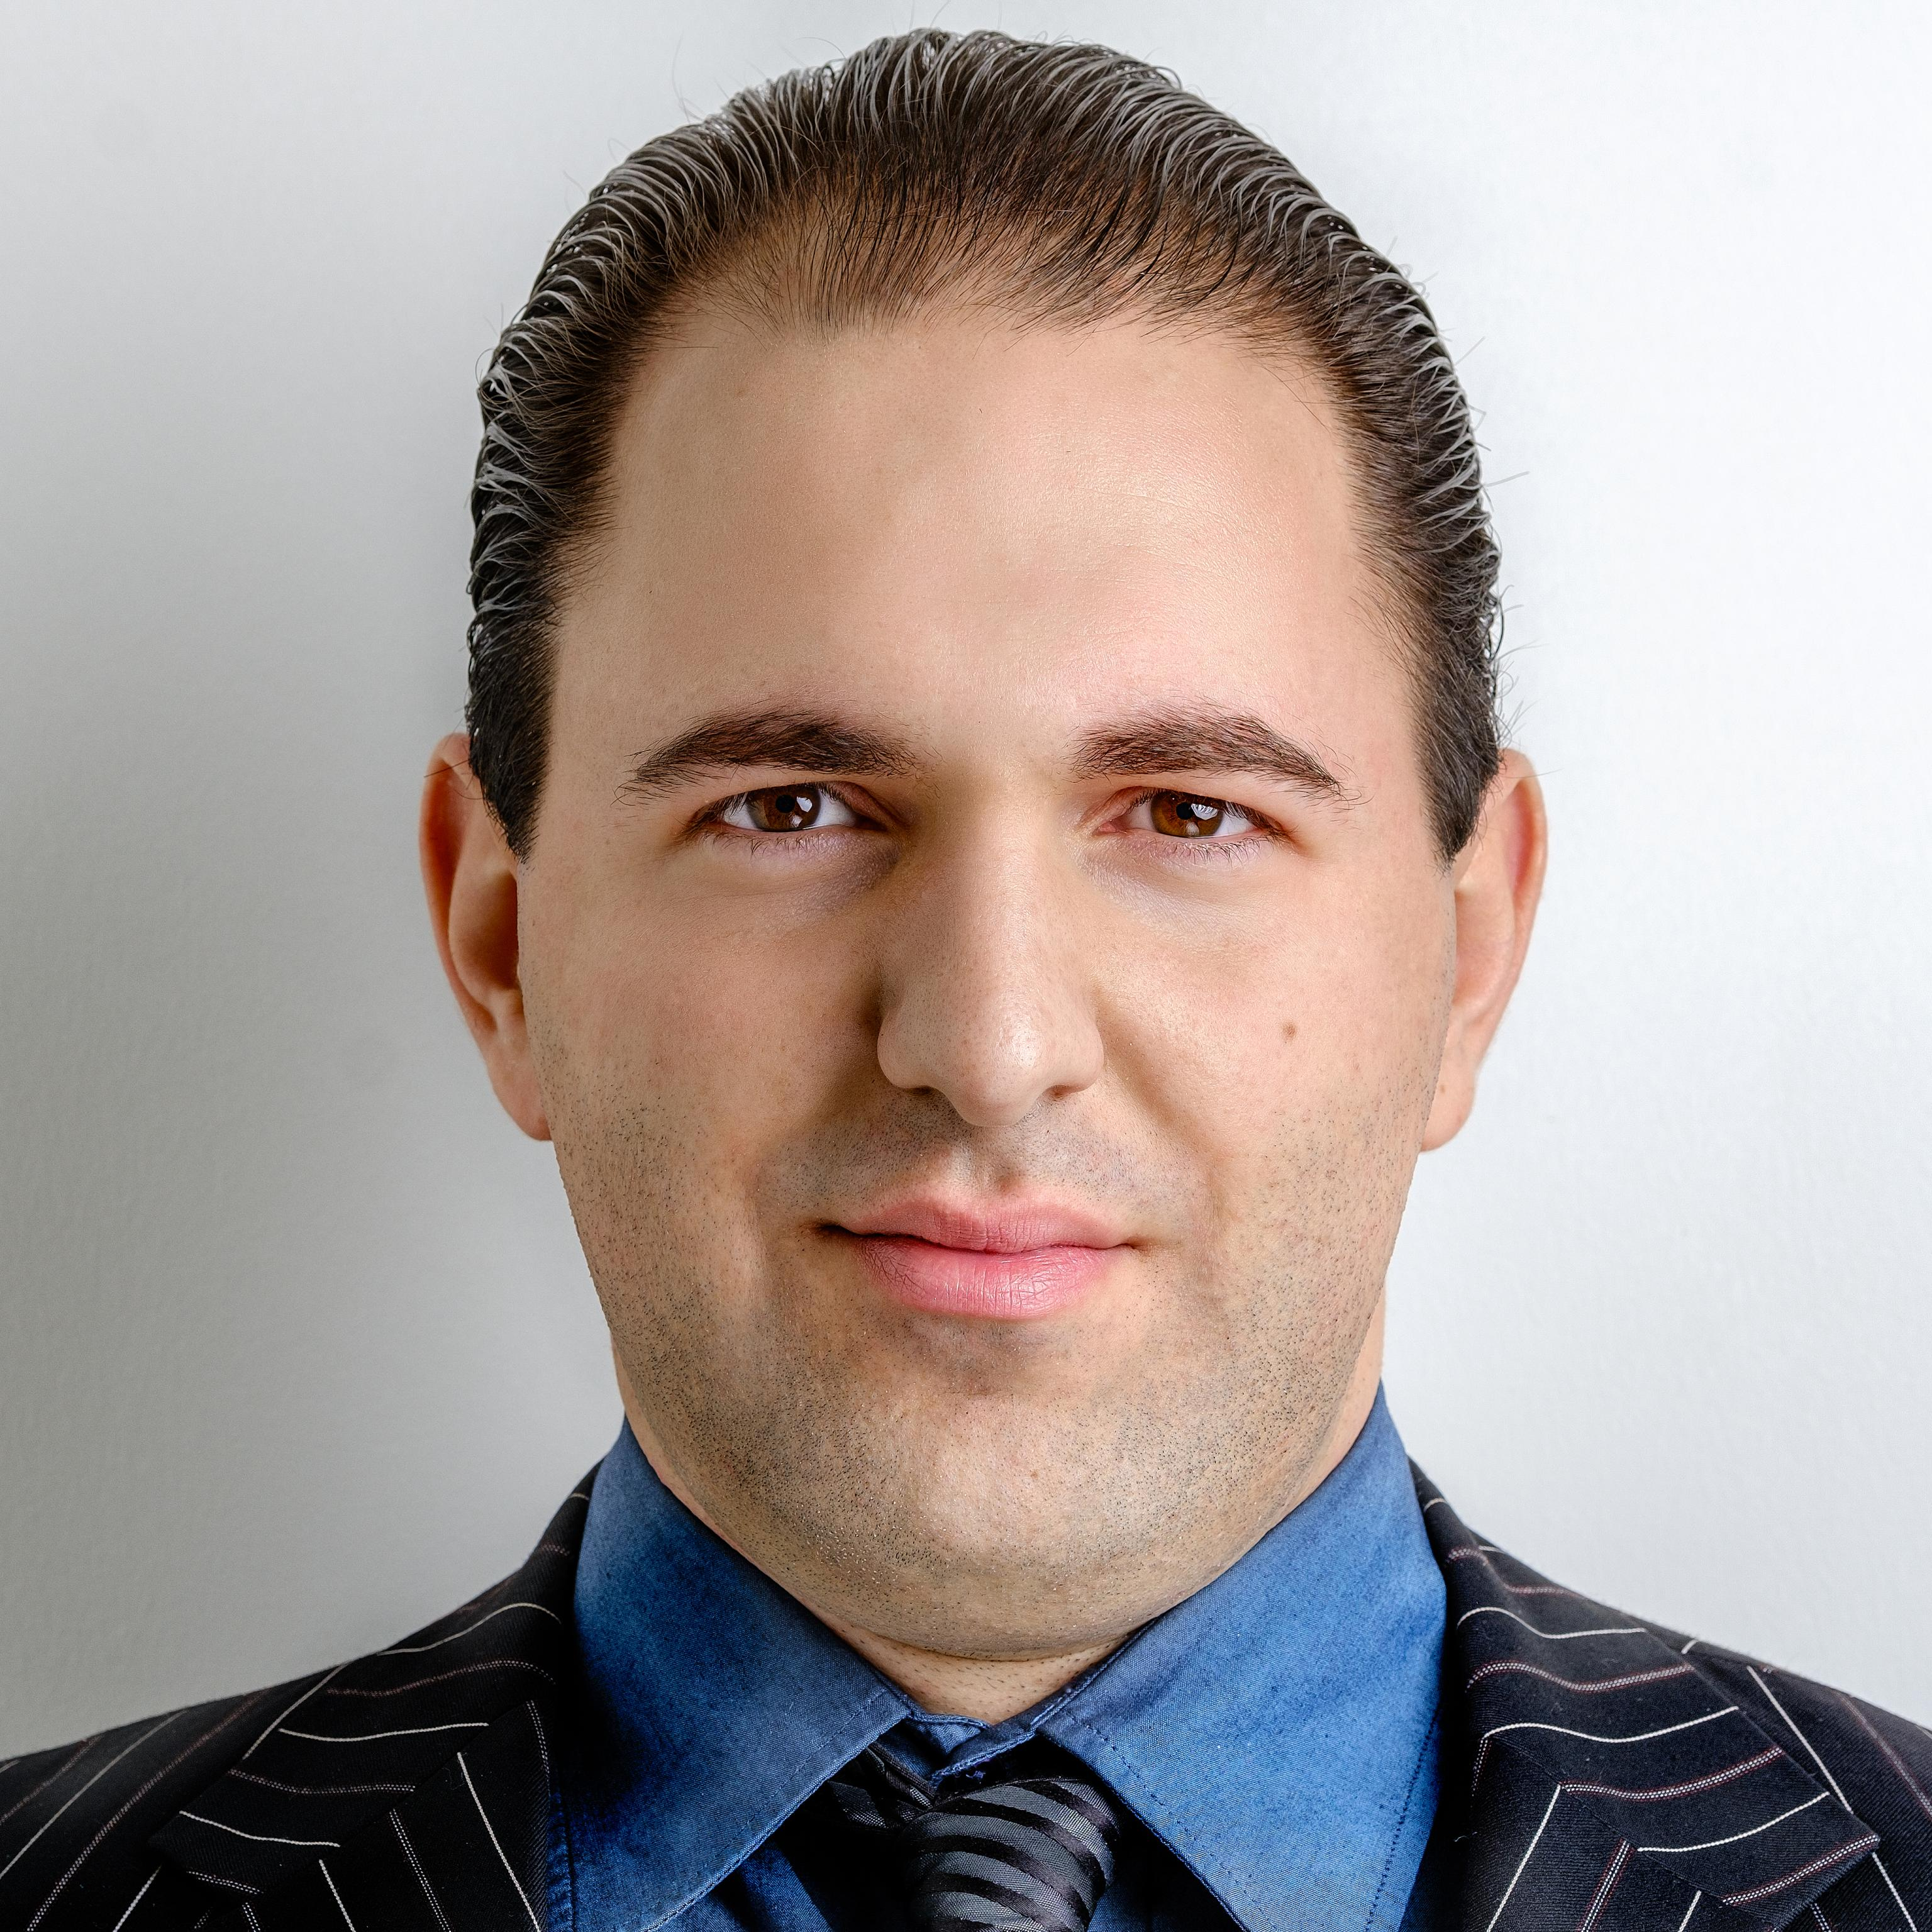 Meet our consultant: Emmanouil Perselis